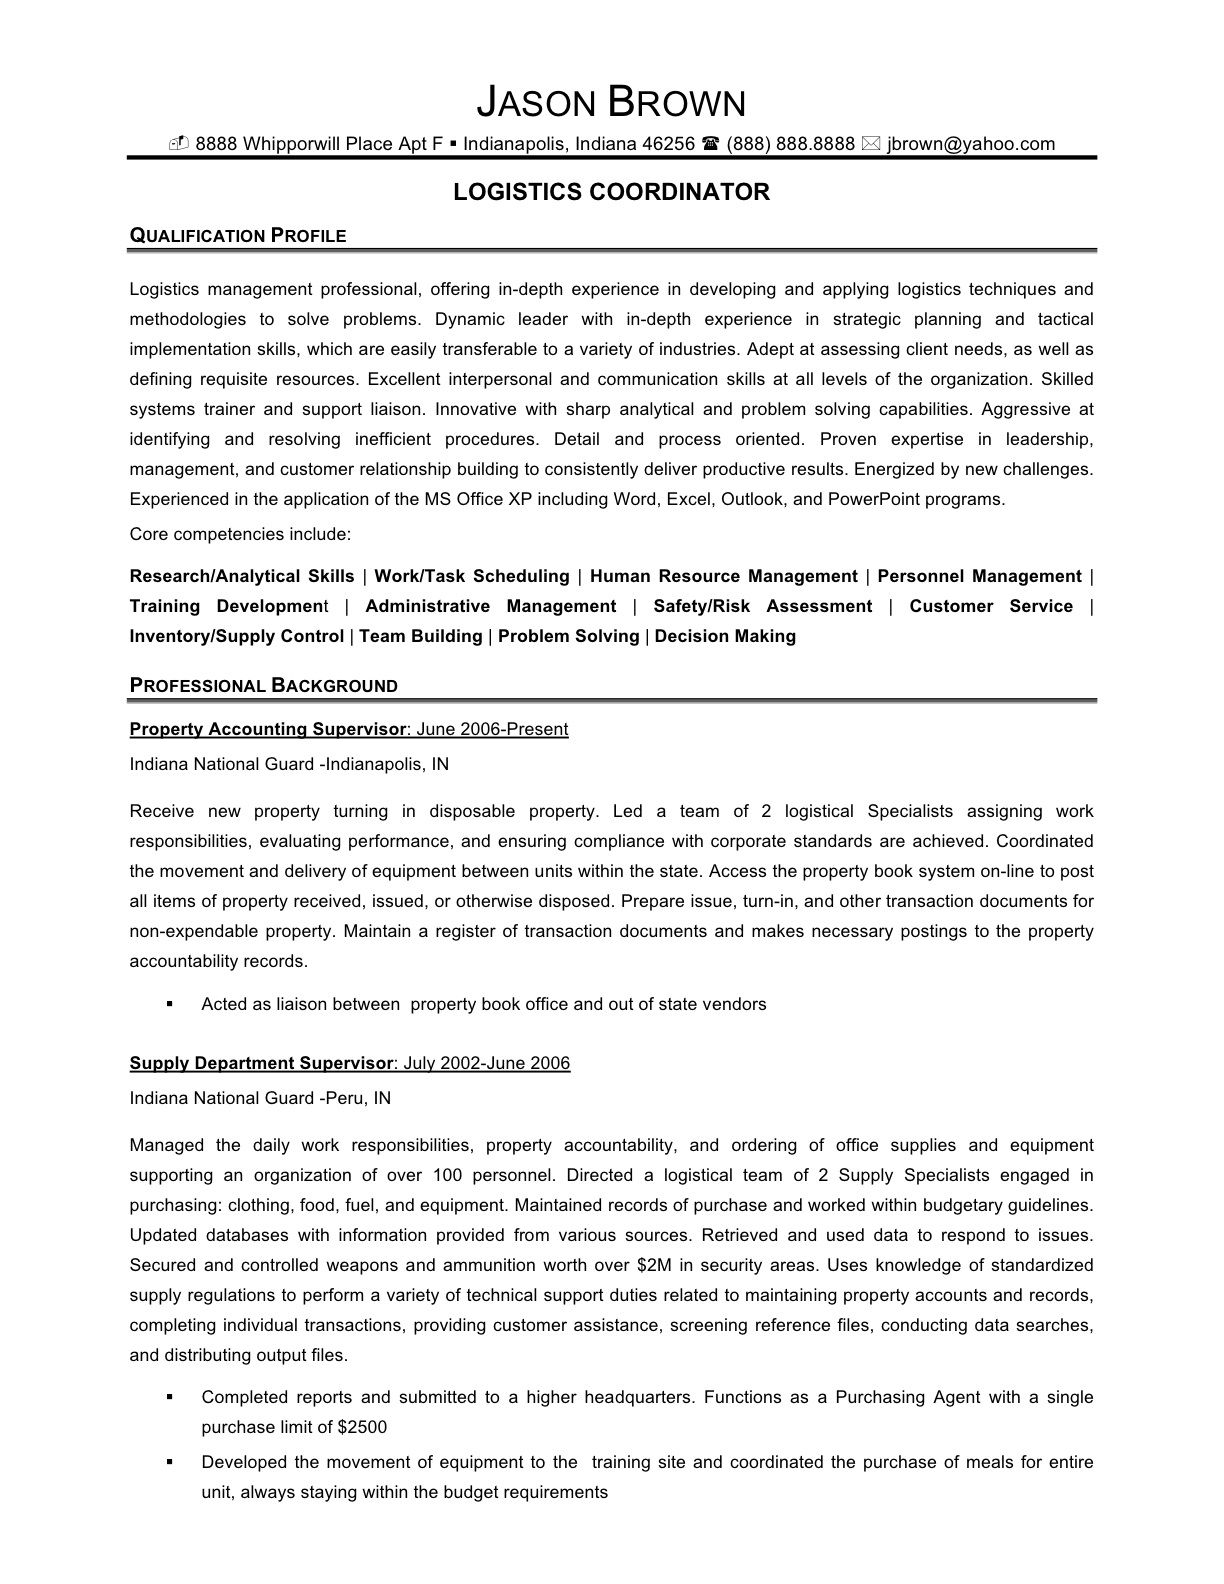 Professional Summary Resume Stunning Senior Logistic Management Resume  Logistics Coordinator1 2018